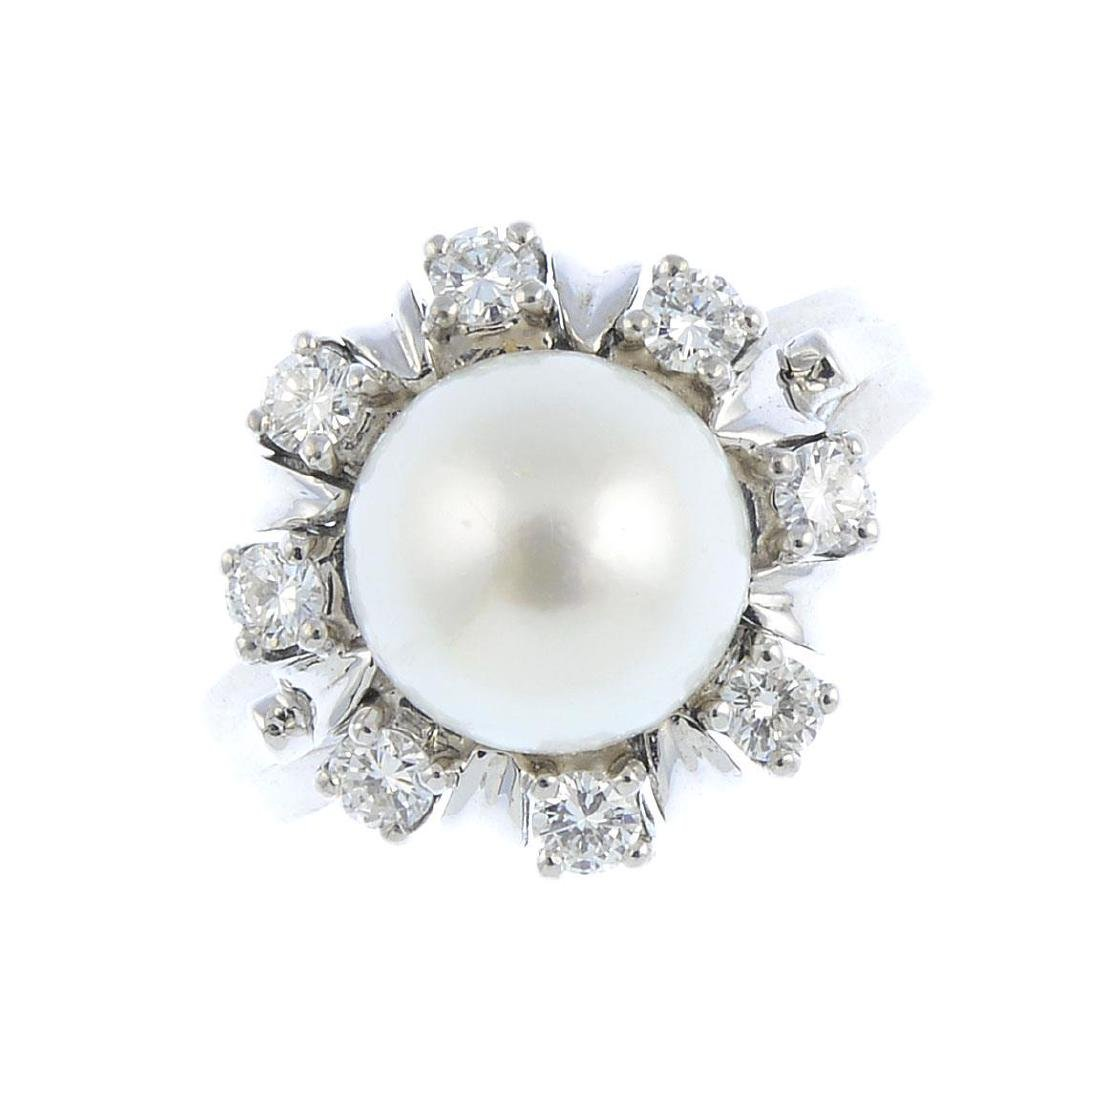 A cultured pearl and diamond floral cluster ring. The